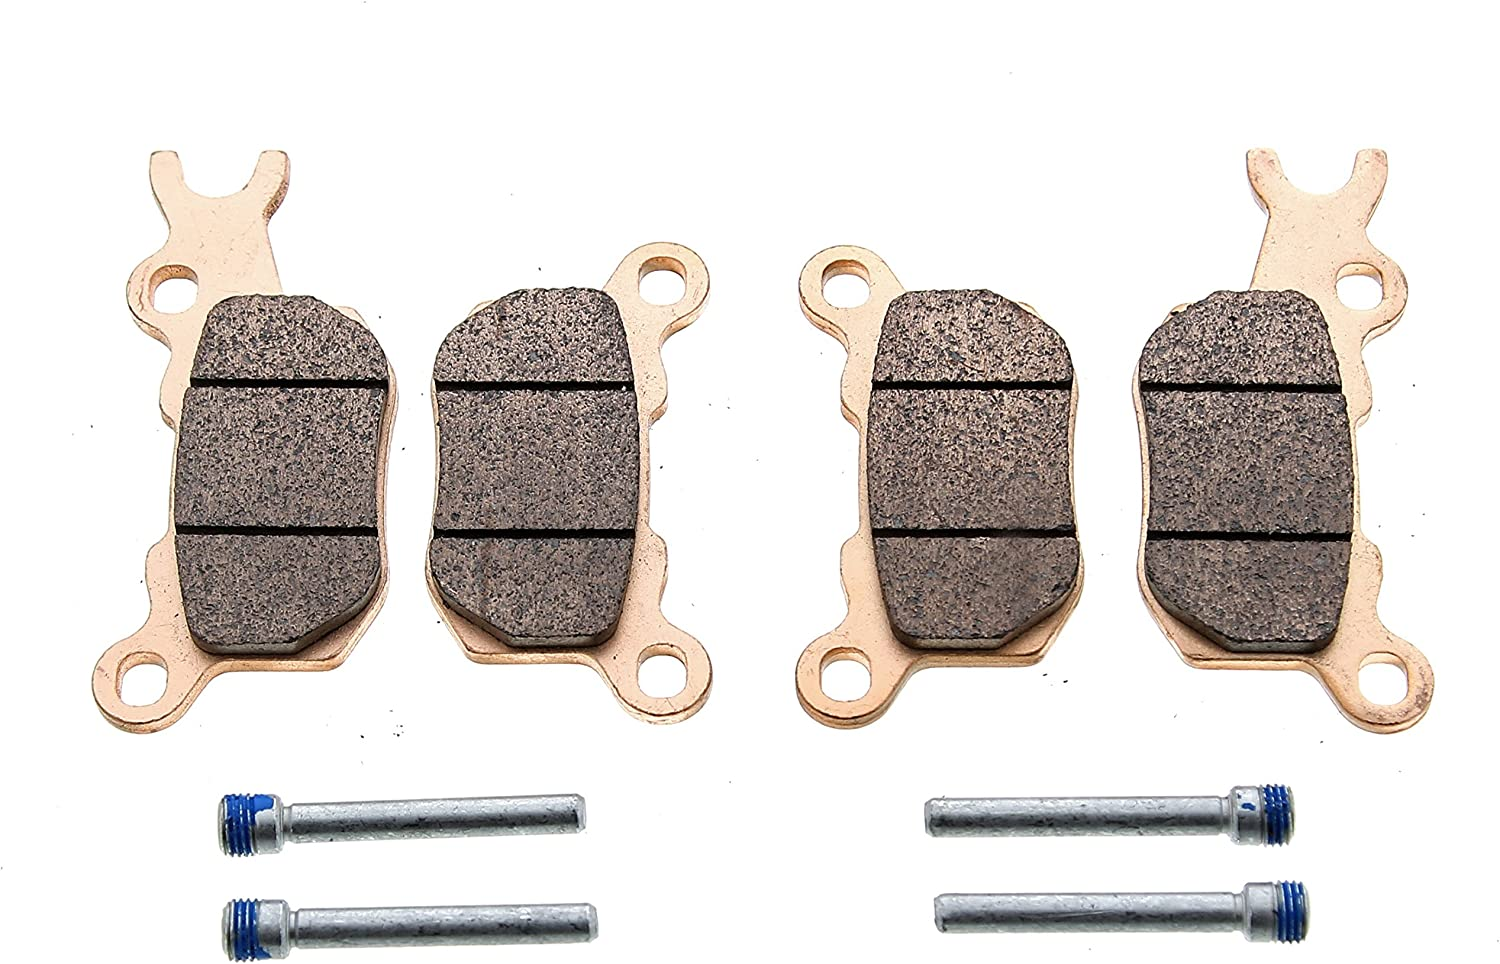 2016-2019 Can-Am Renegade 1000R 4x4 XMR Front and Rear Brake Pads by Race-Driven